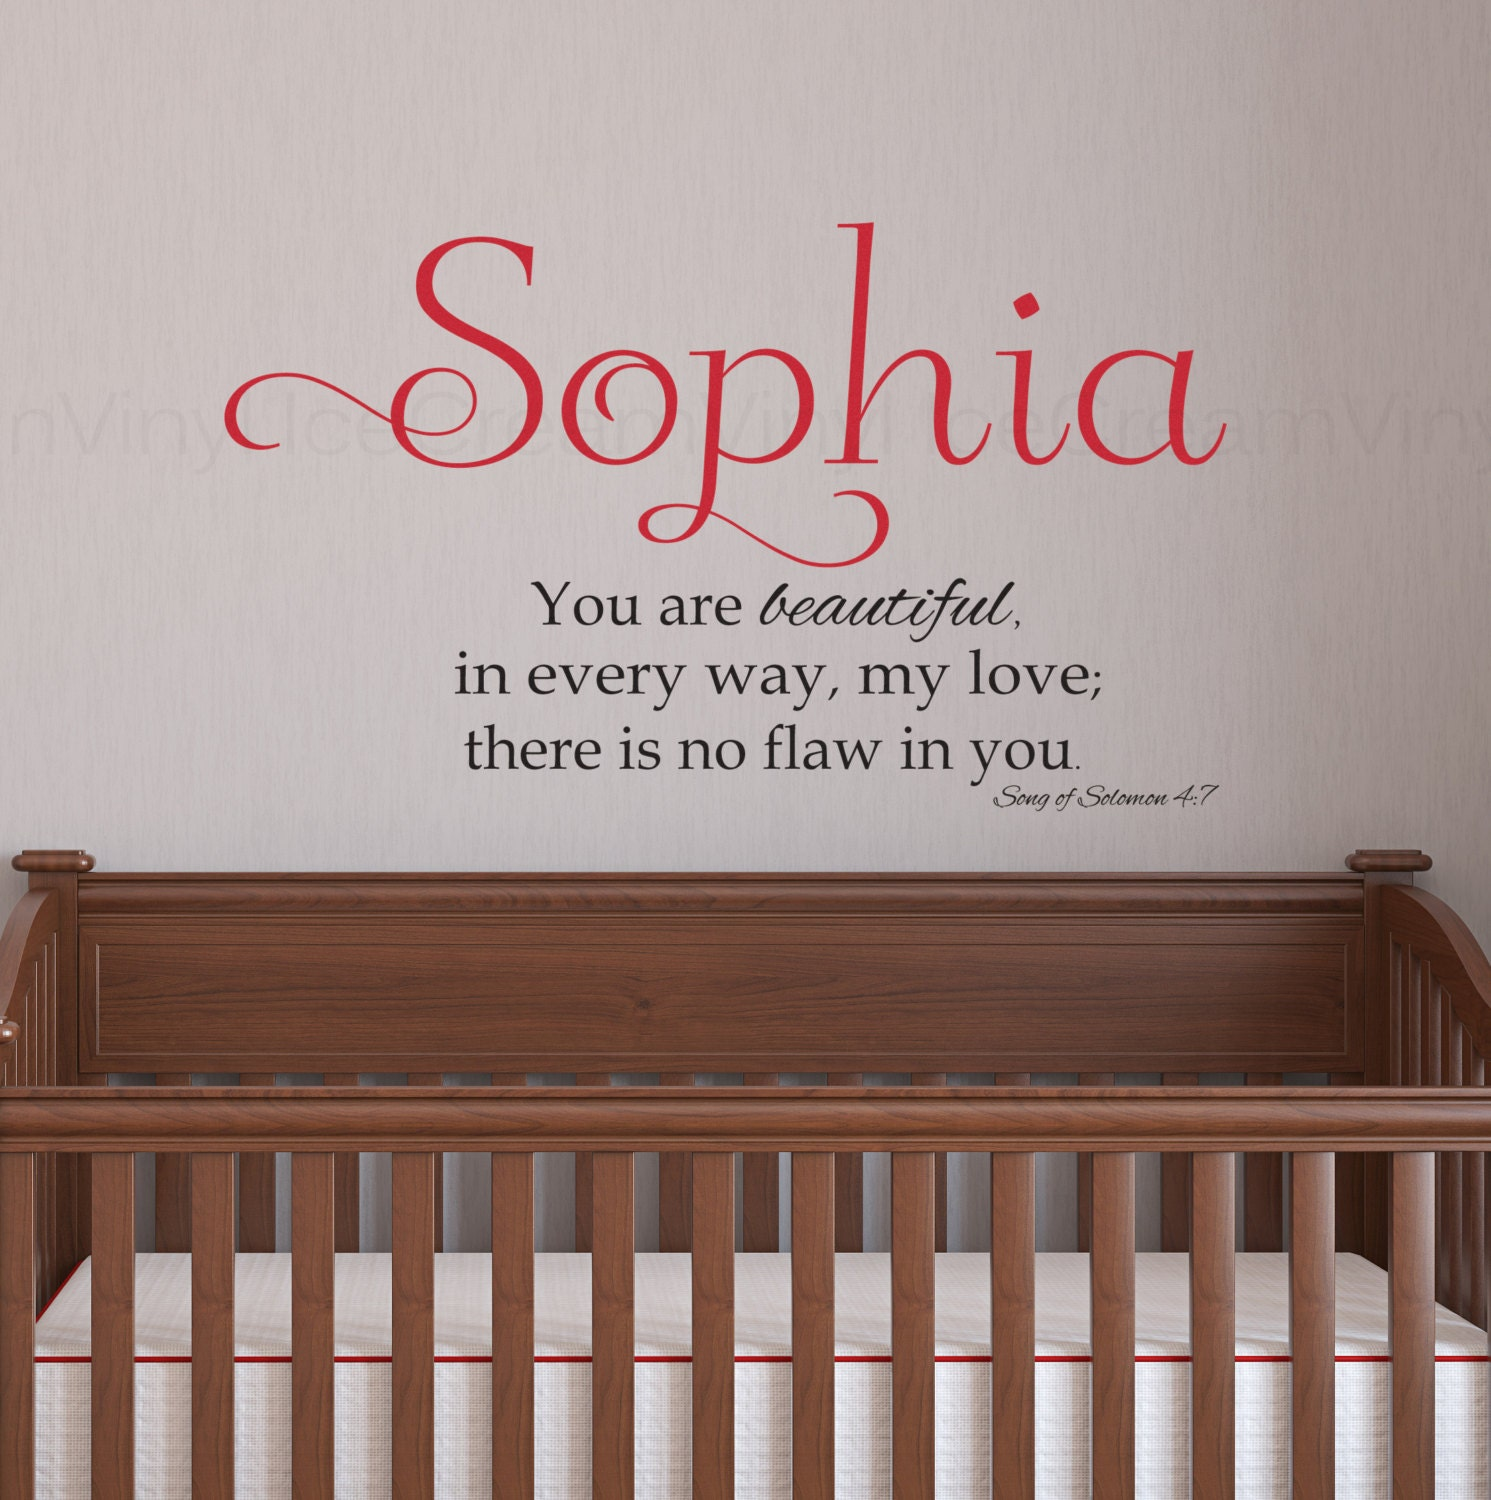 personalized scripture wall decal song of solomon 4 7 wall art. Black Bedroom Furniture Sets. Home Design Ideas